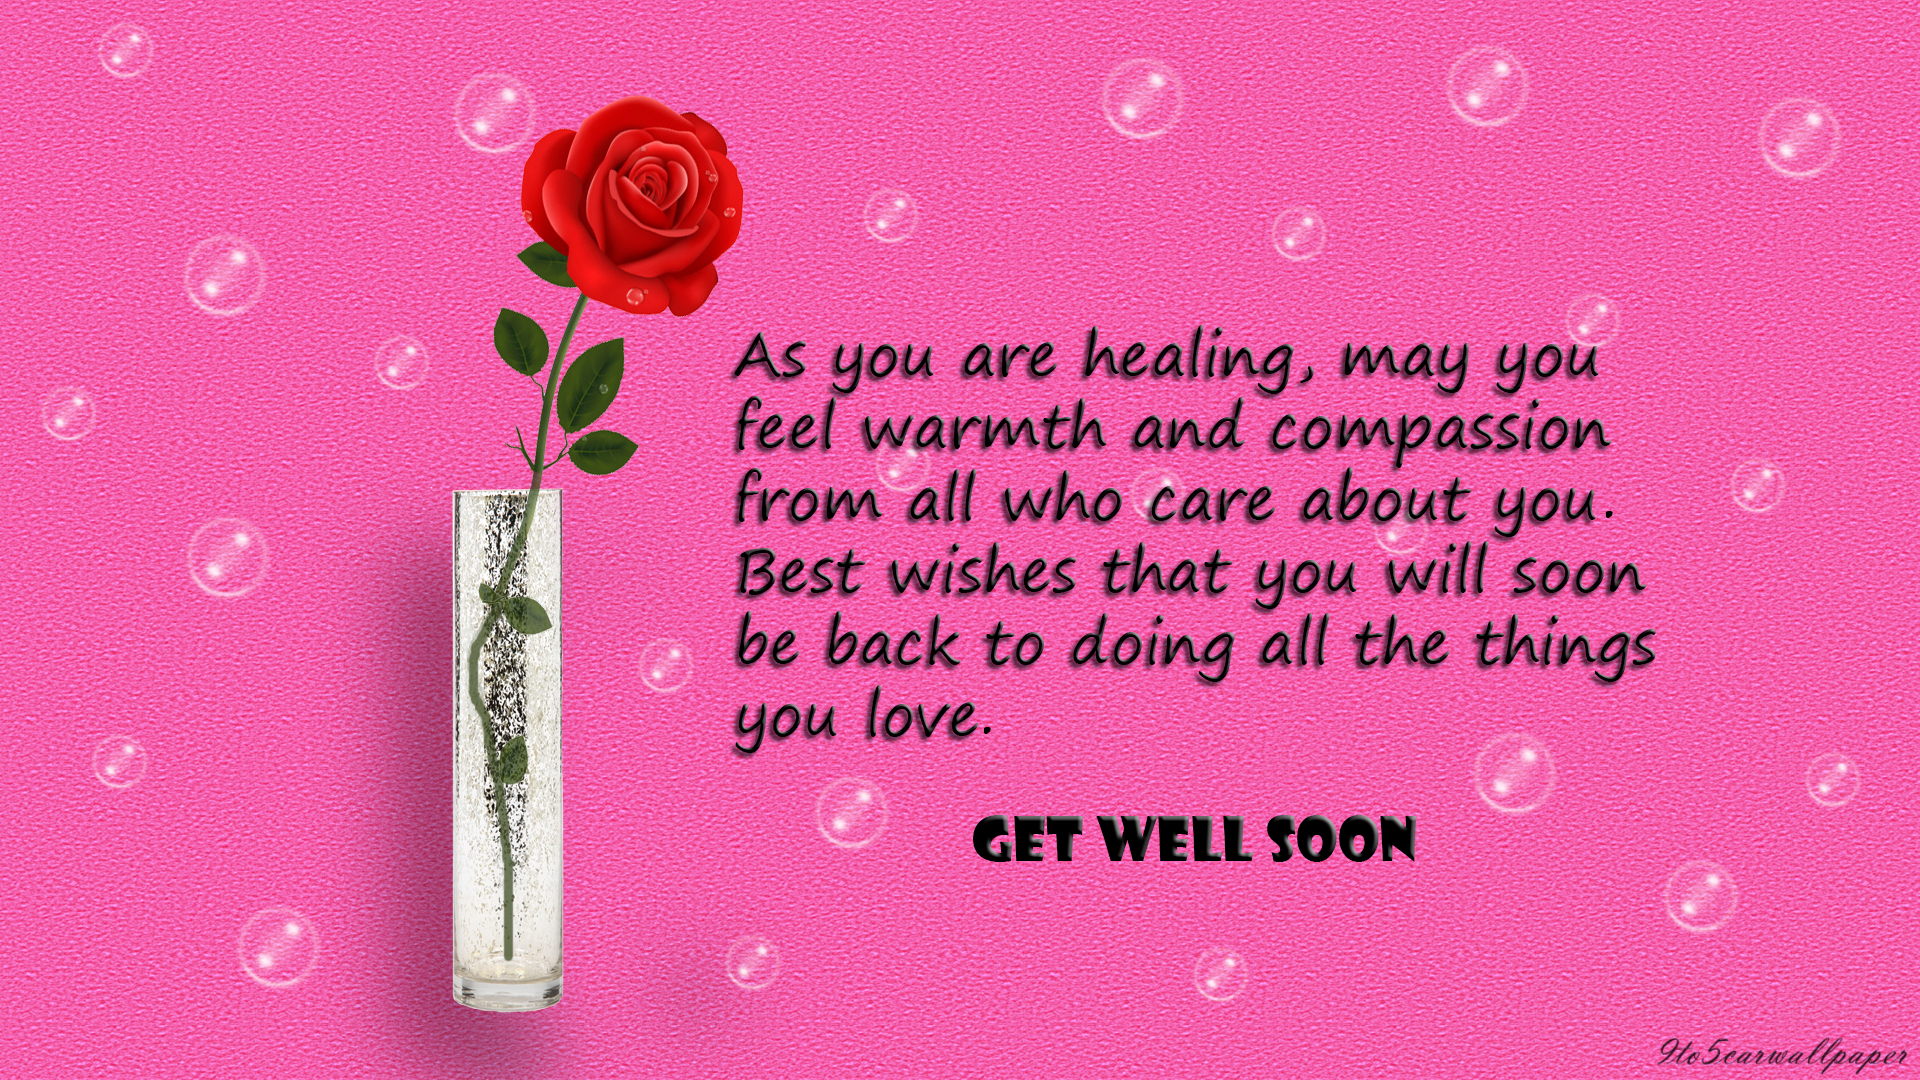 Get Well Soon Latest Quotes Pics Images Wallpapers